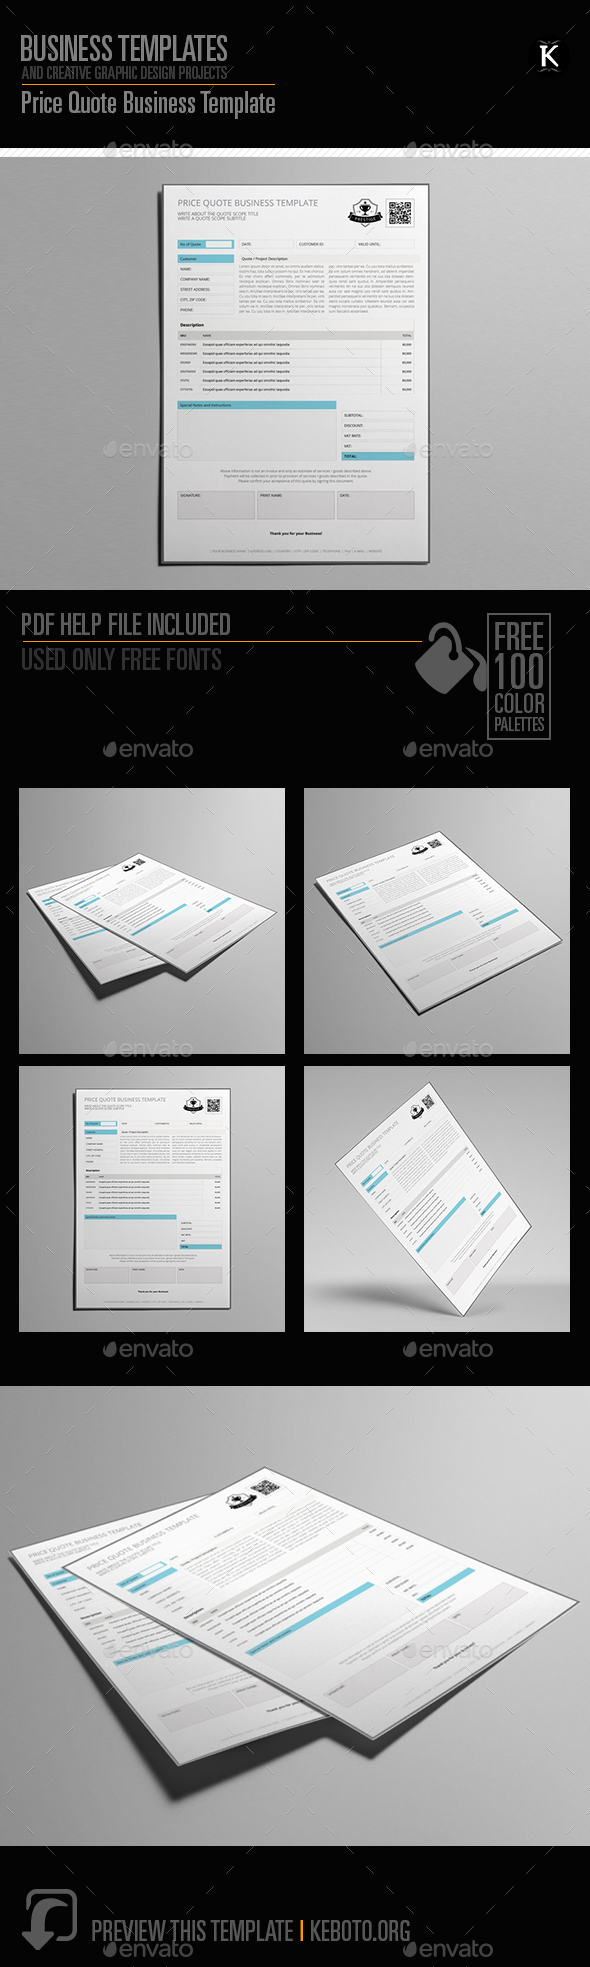 Price Quote Business Template - Miscellaneous Print Templates